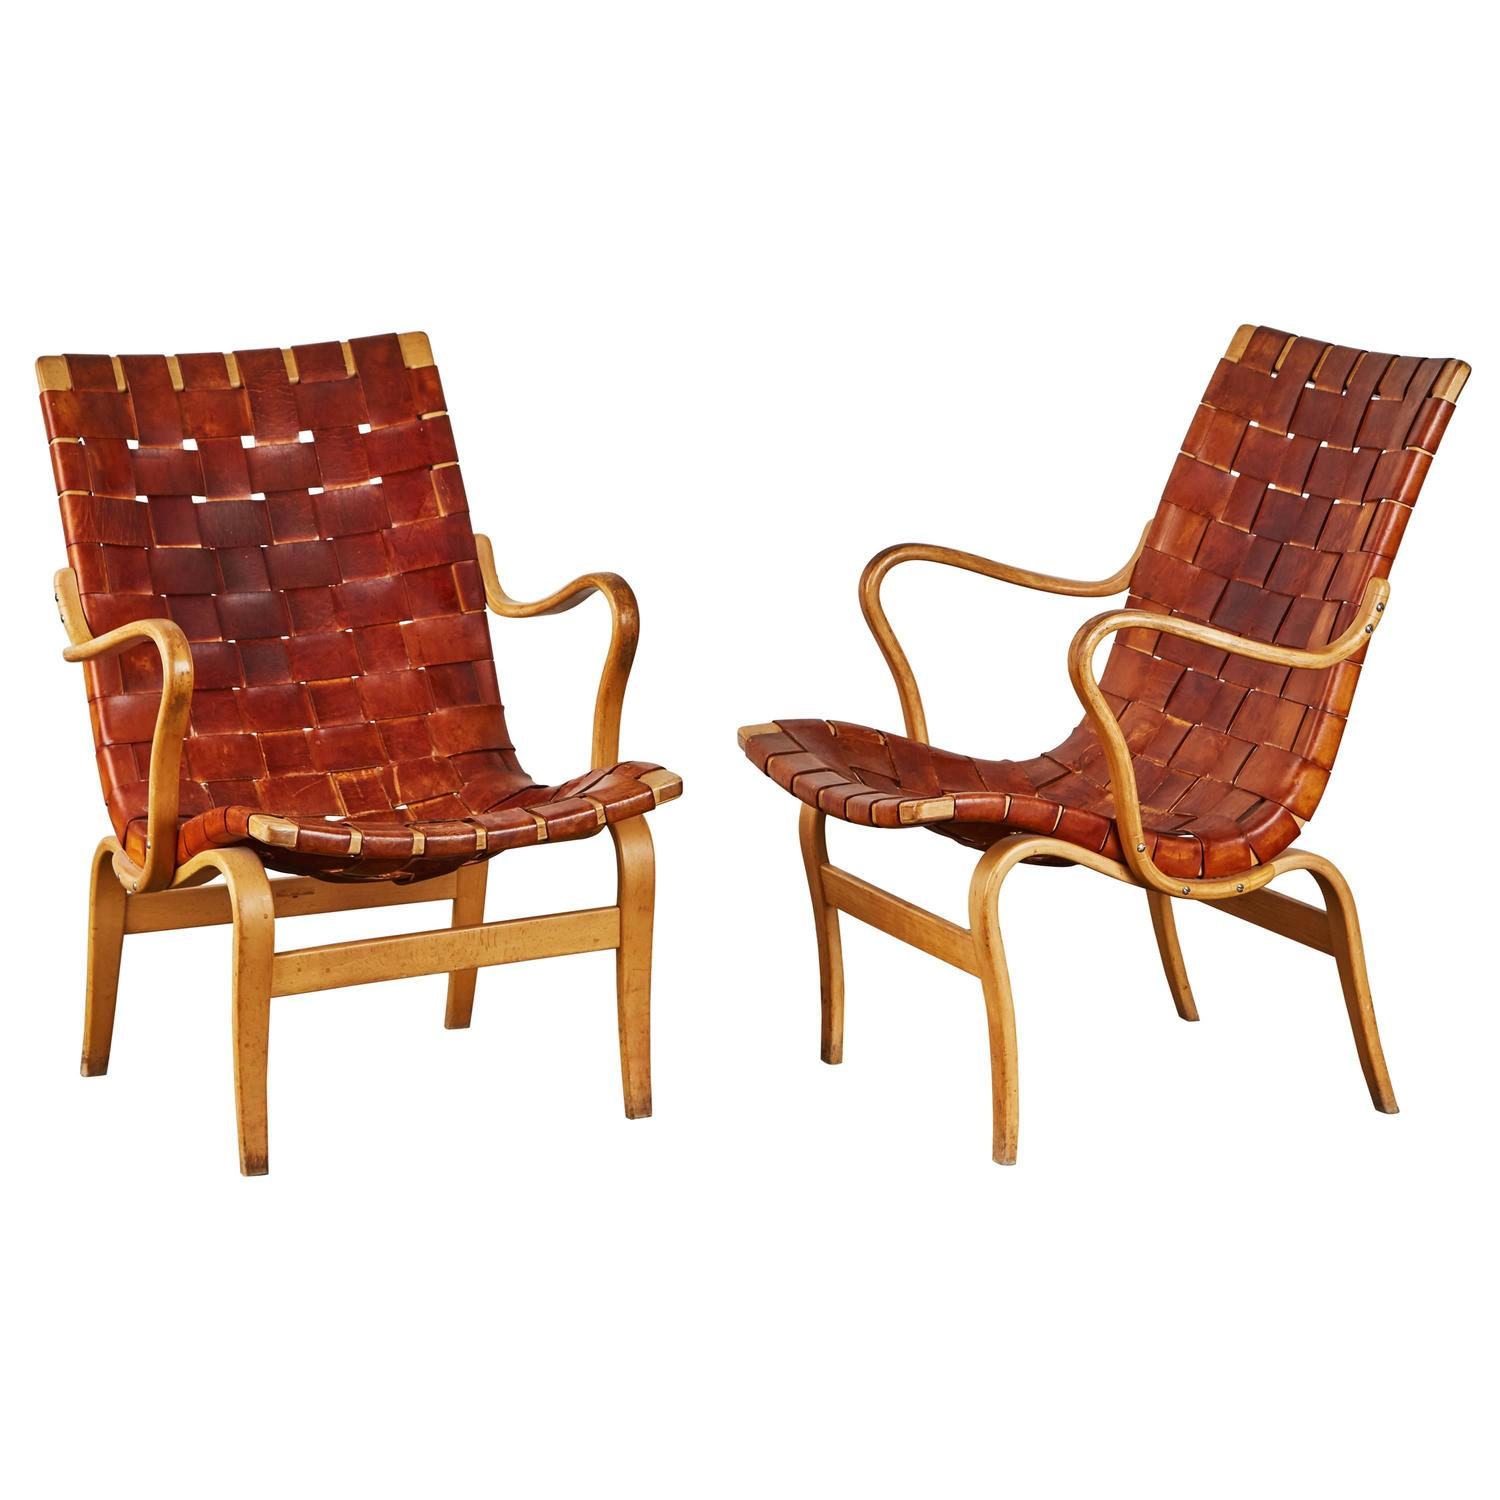 Woven Leather Chair Pair Of Woven Leather Eva Chairs By Bruno Mathsson For